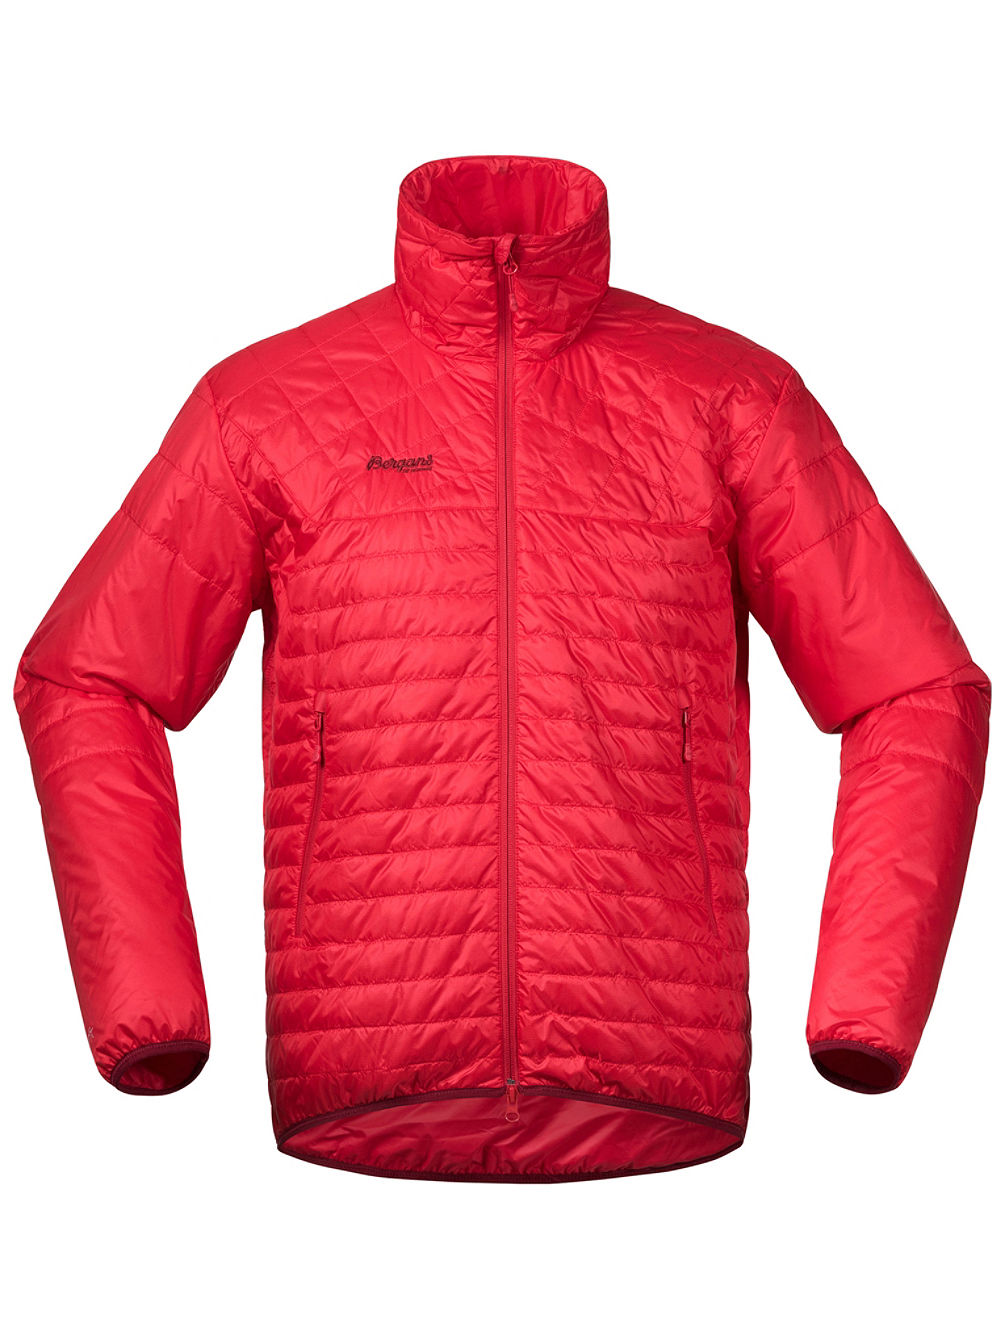 Uranostind Ins Outdoor Jacket